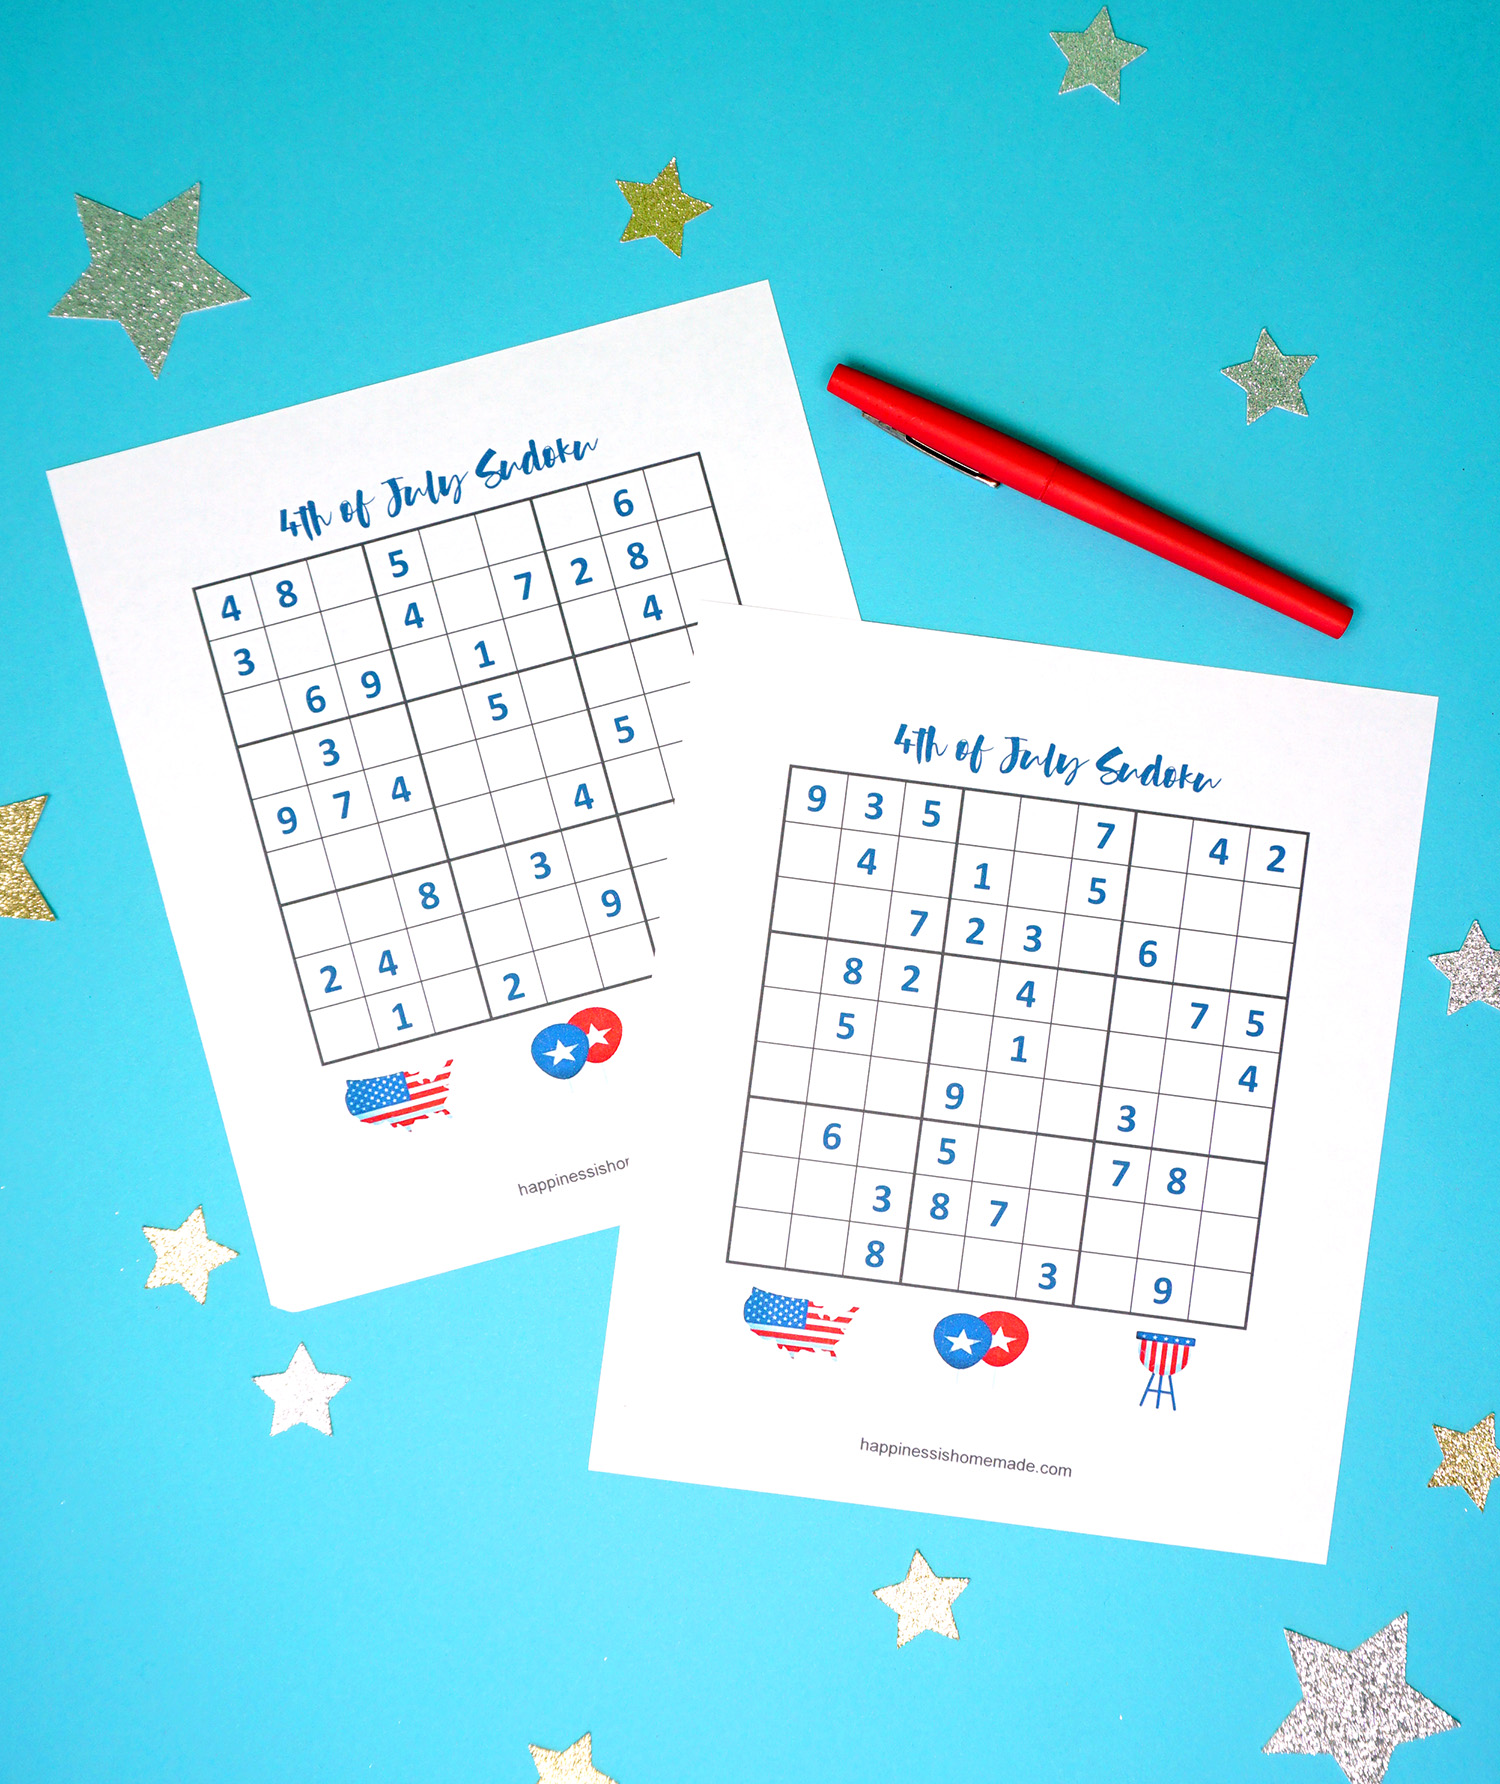 graphic relating to Easy Logic Puzzles Printable identify 4th of July Printable Sudoku Puzzles + Logic Puzzle